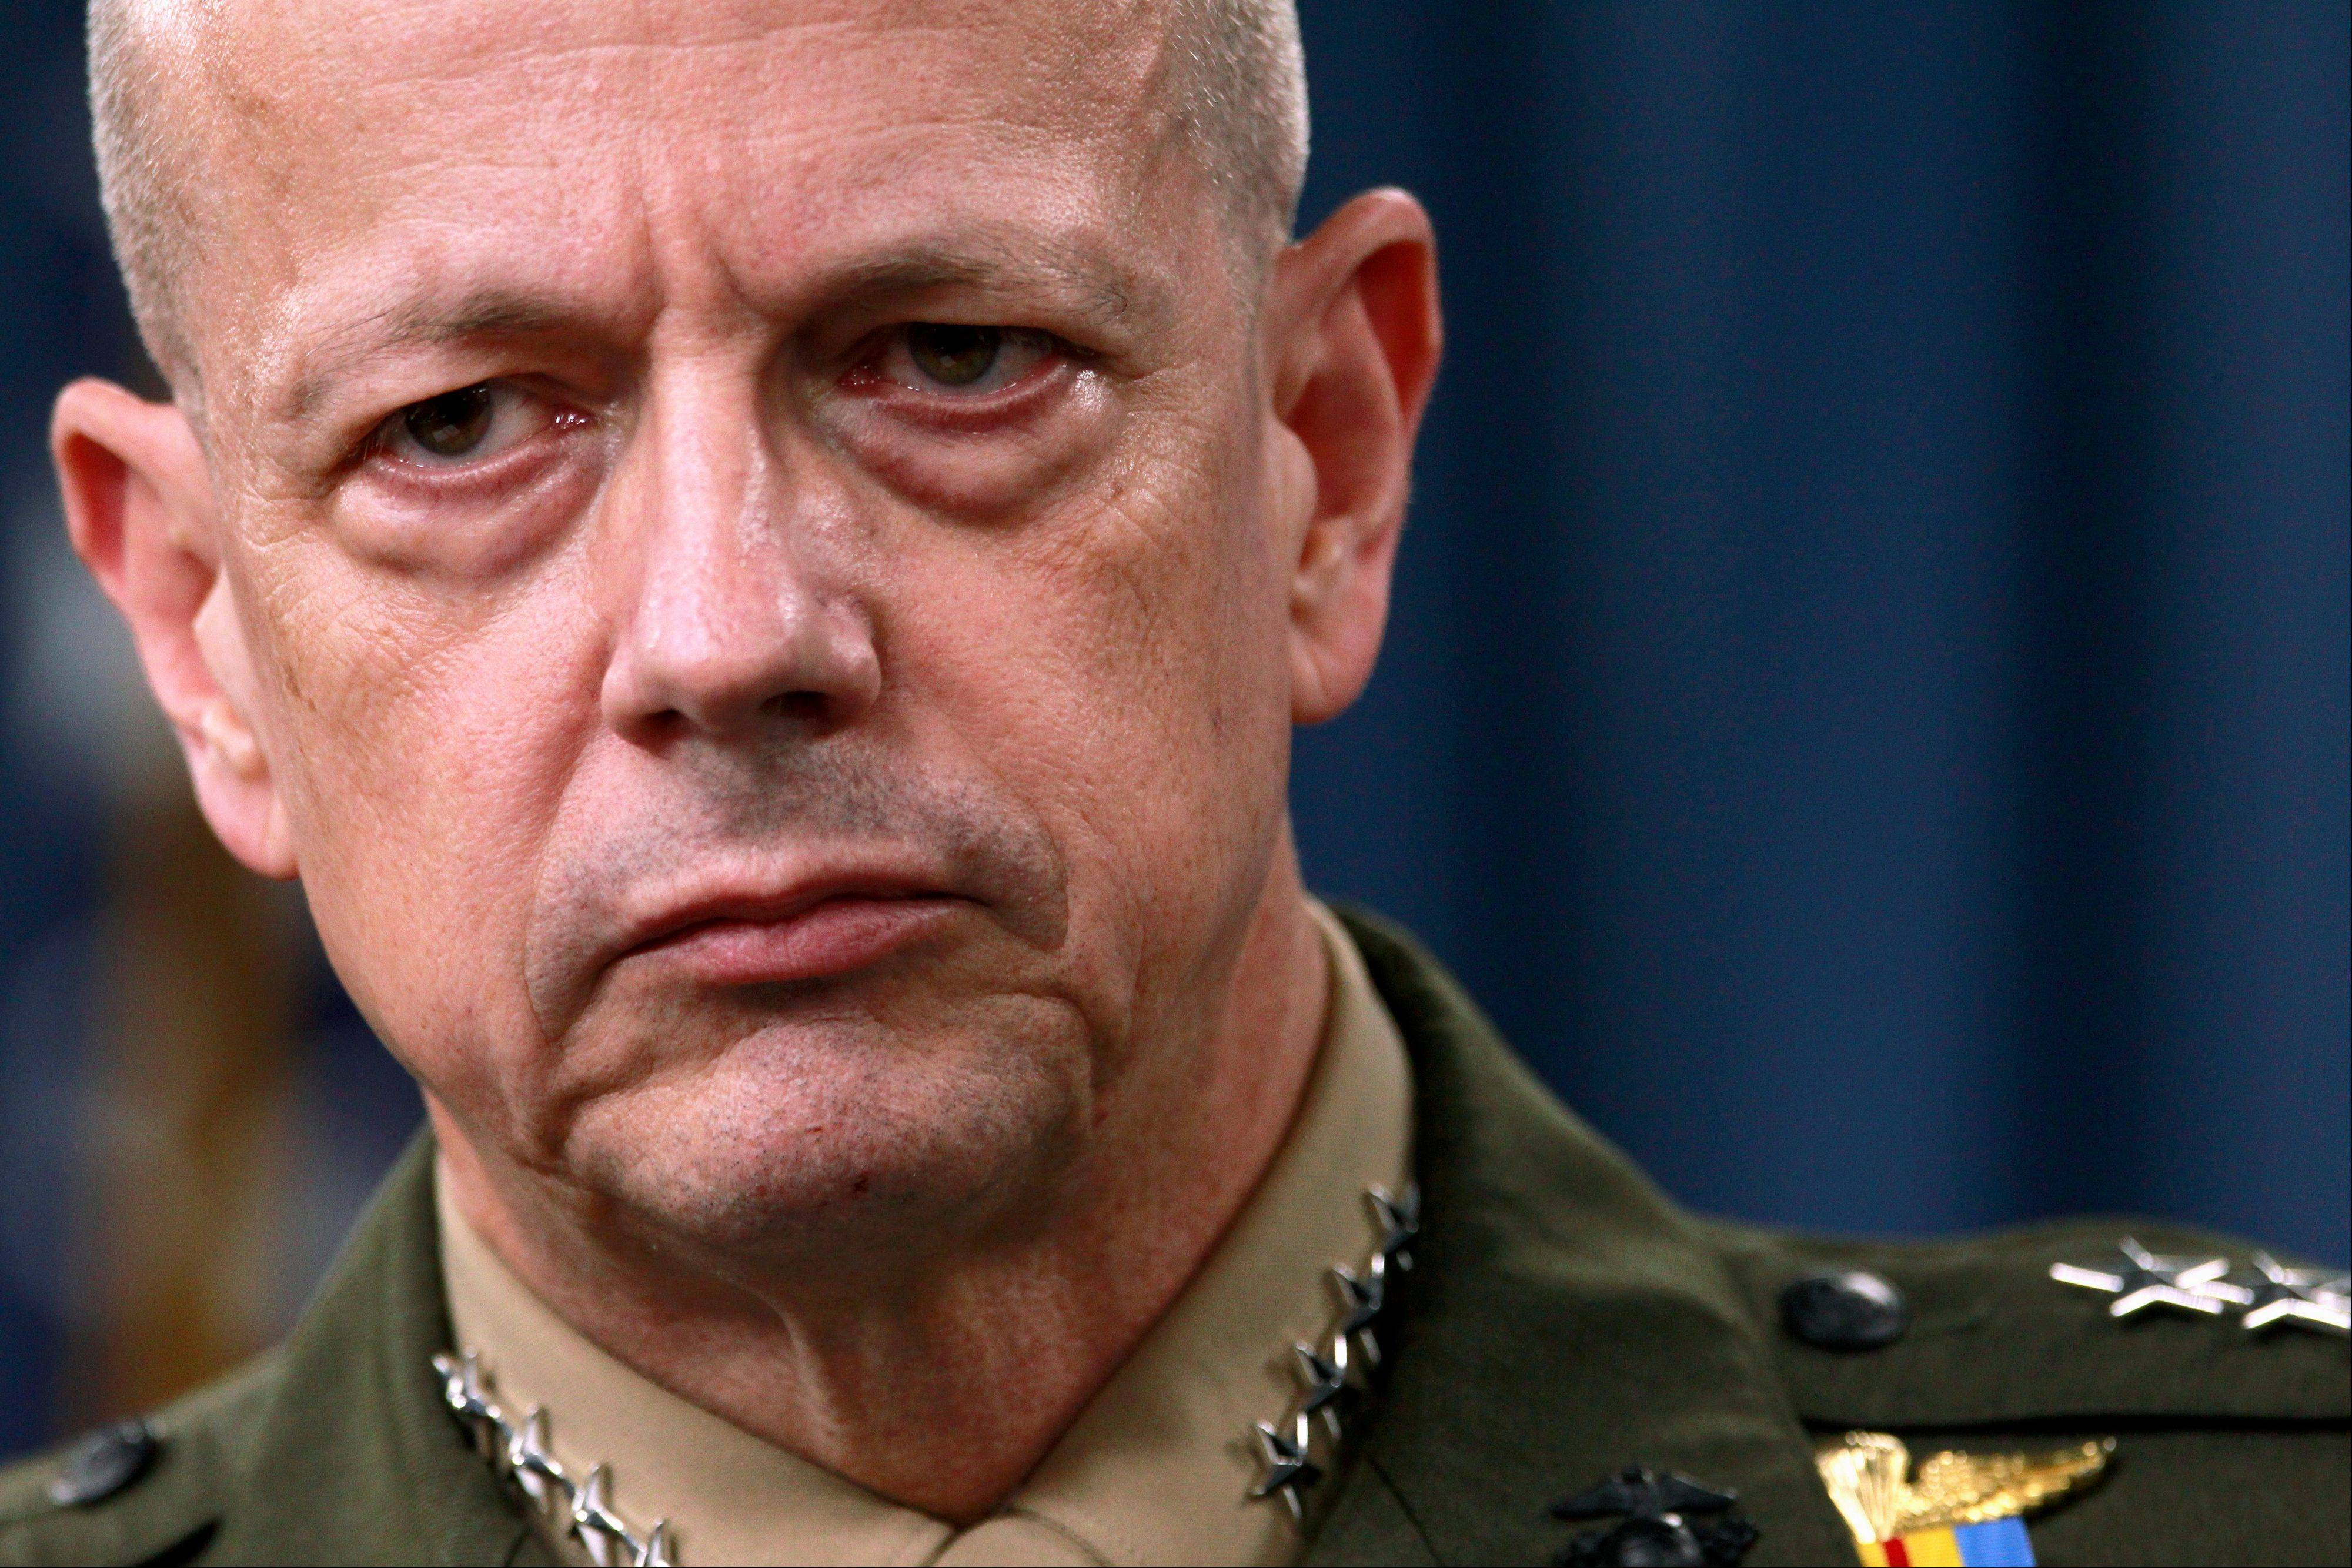 The sex scandal that led to CIA Director David Petraeus� downfall widened Tuesday with word Marine Gen. John Allen, the top U.S. commander in Afghanistan, is under investigation for thousands of alleged �inappropriate communications� with another woman involved in the case.